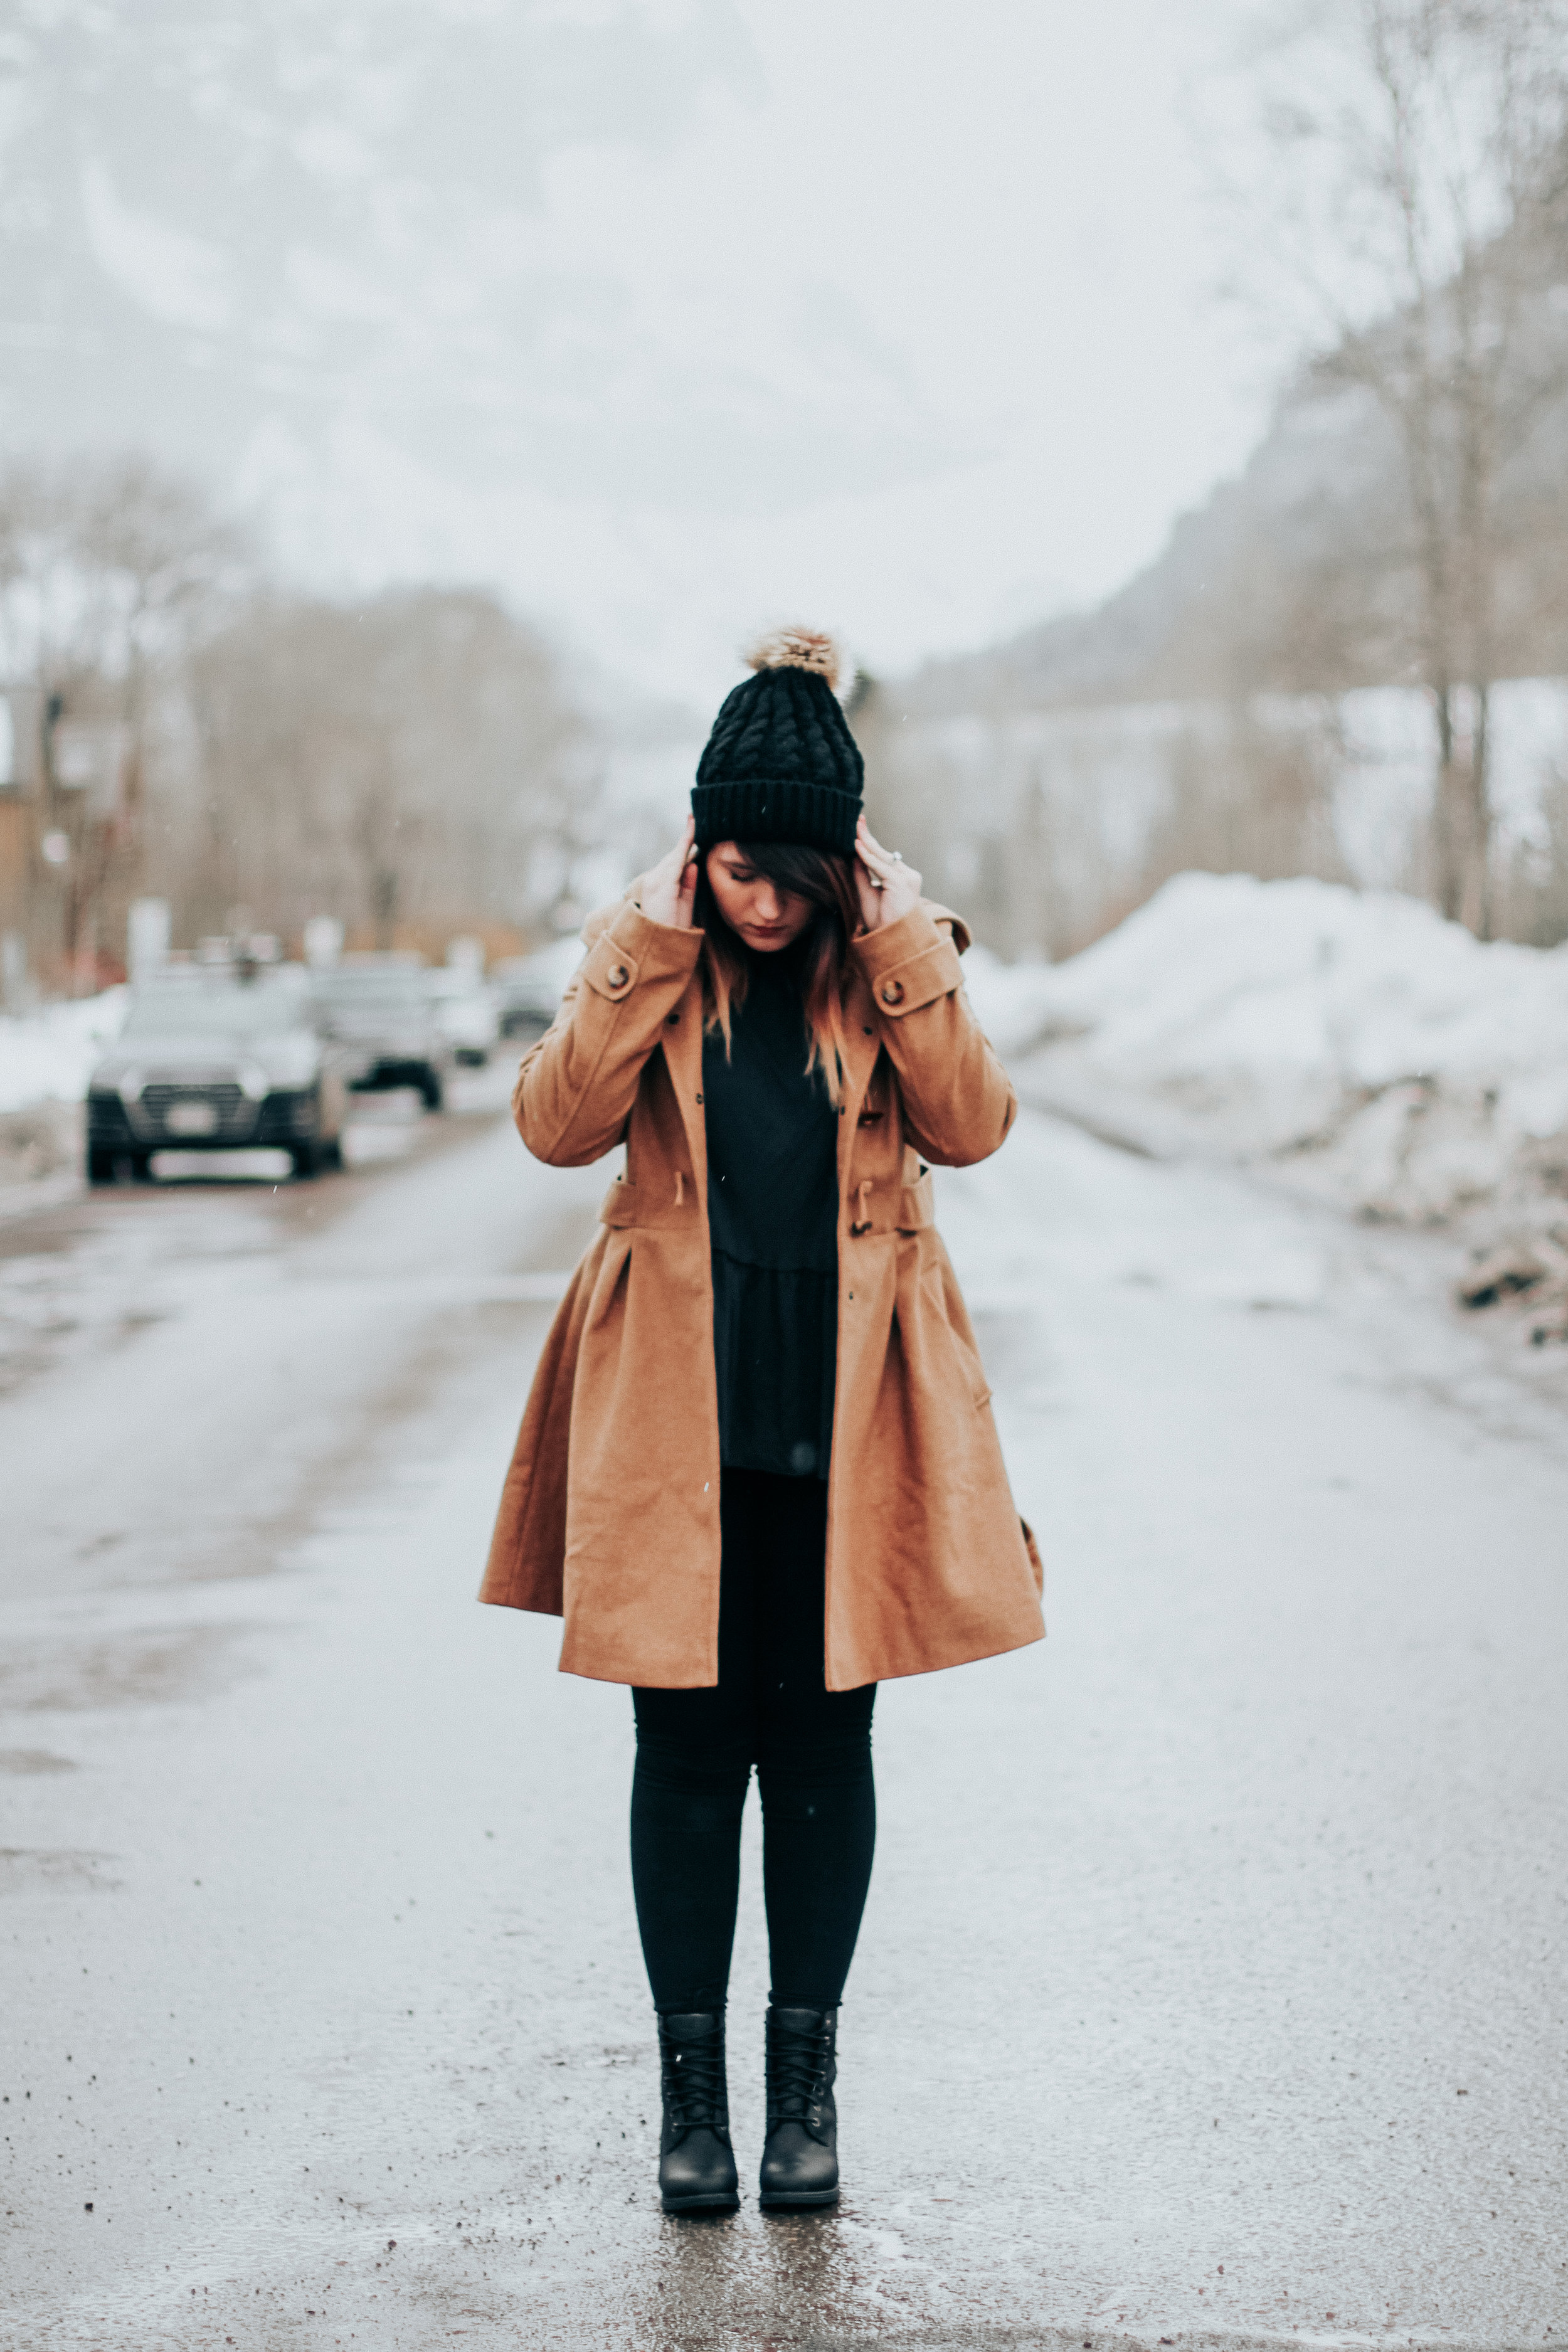 Reflecting on 2017 Telluride CO Winter Outfit of the Day via Chelcey Tate www.chelceytate.com